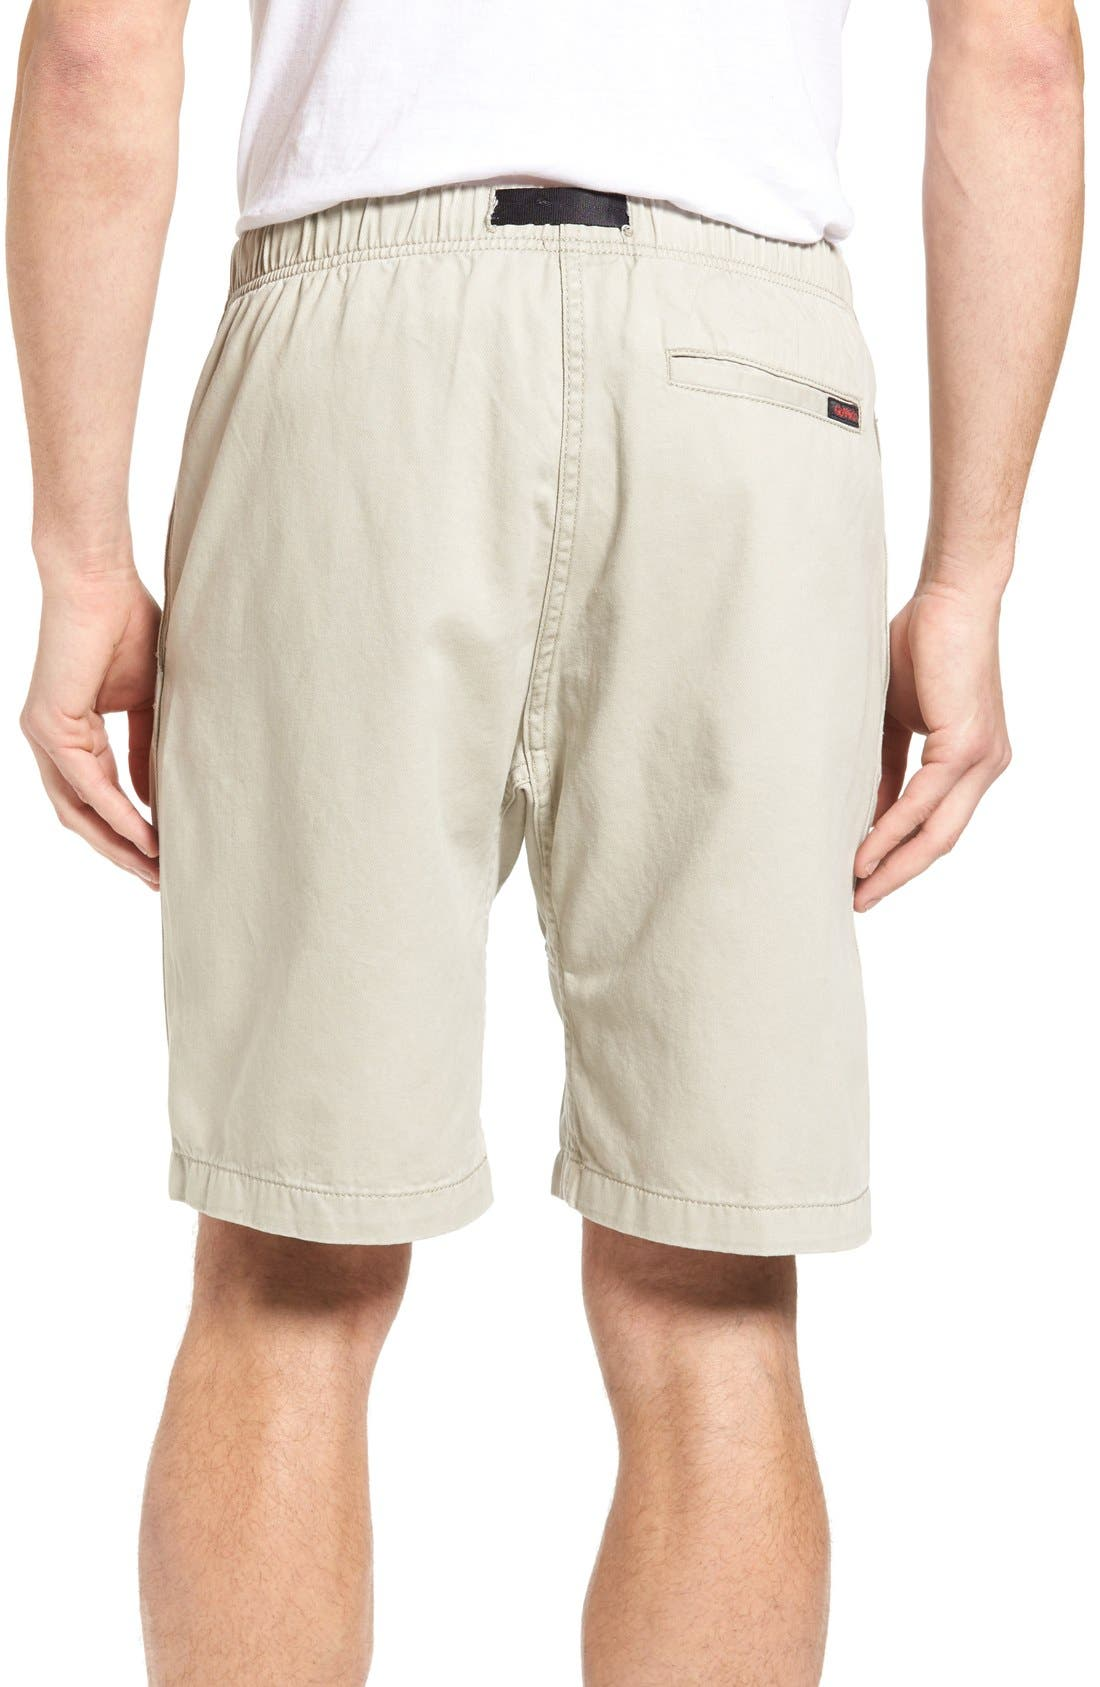 Rockin Sport Shorts,                             Alternate thumbnail 31, color,